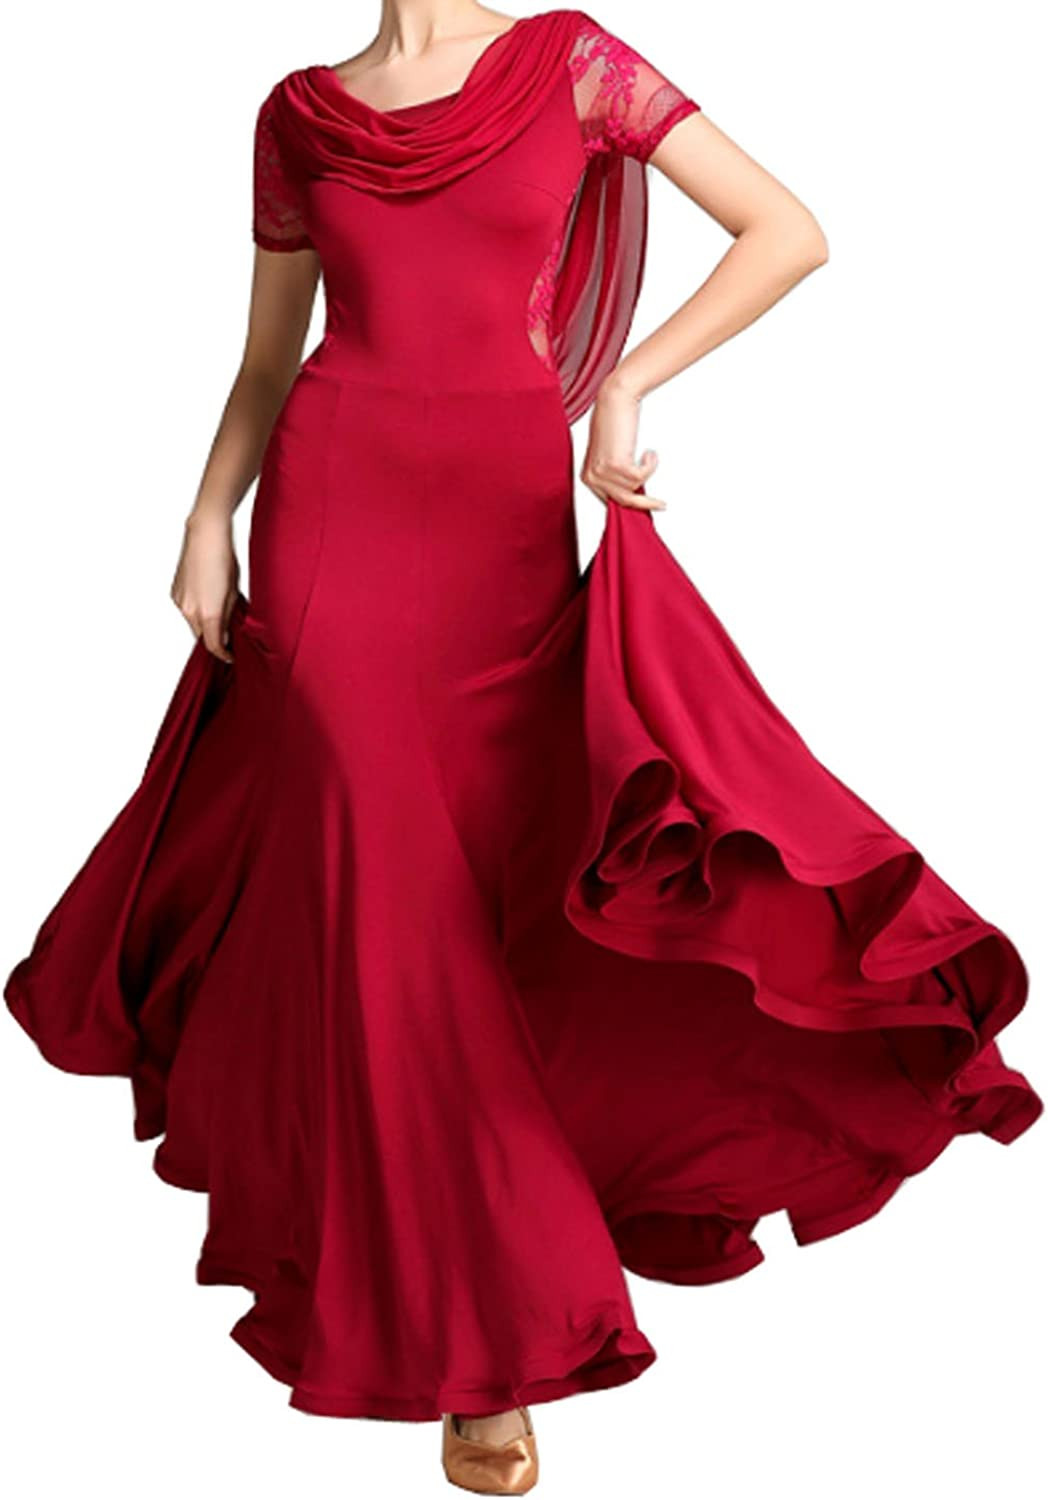 Original Design Modern Dress Ballroom Dress Waltz Dress Cha Cha Dress Tango Dress